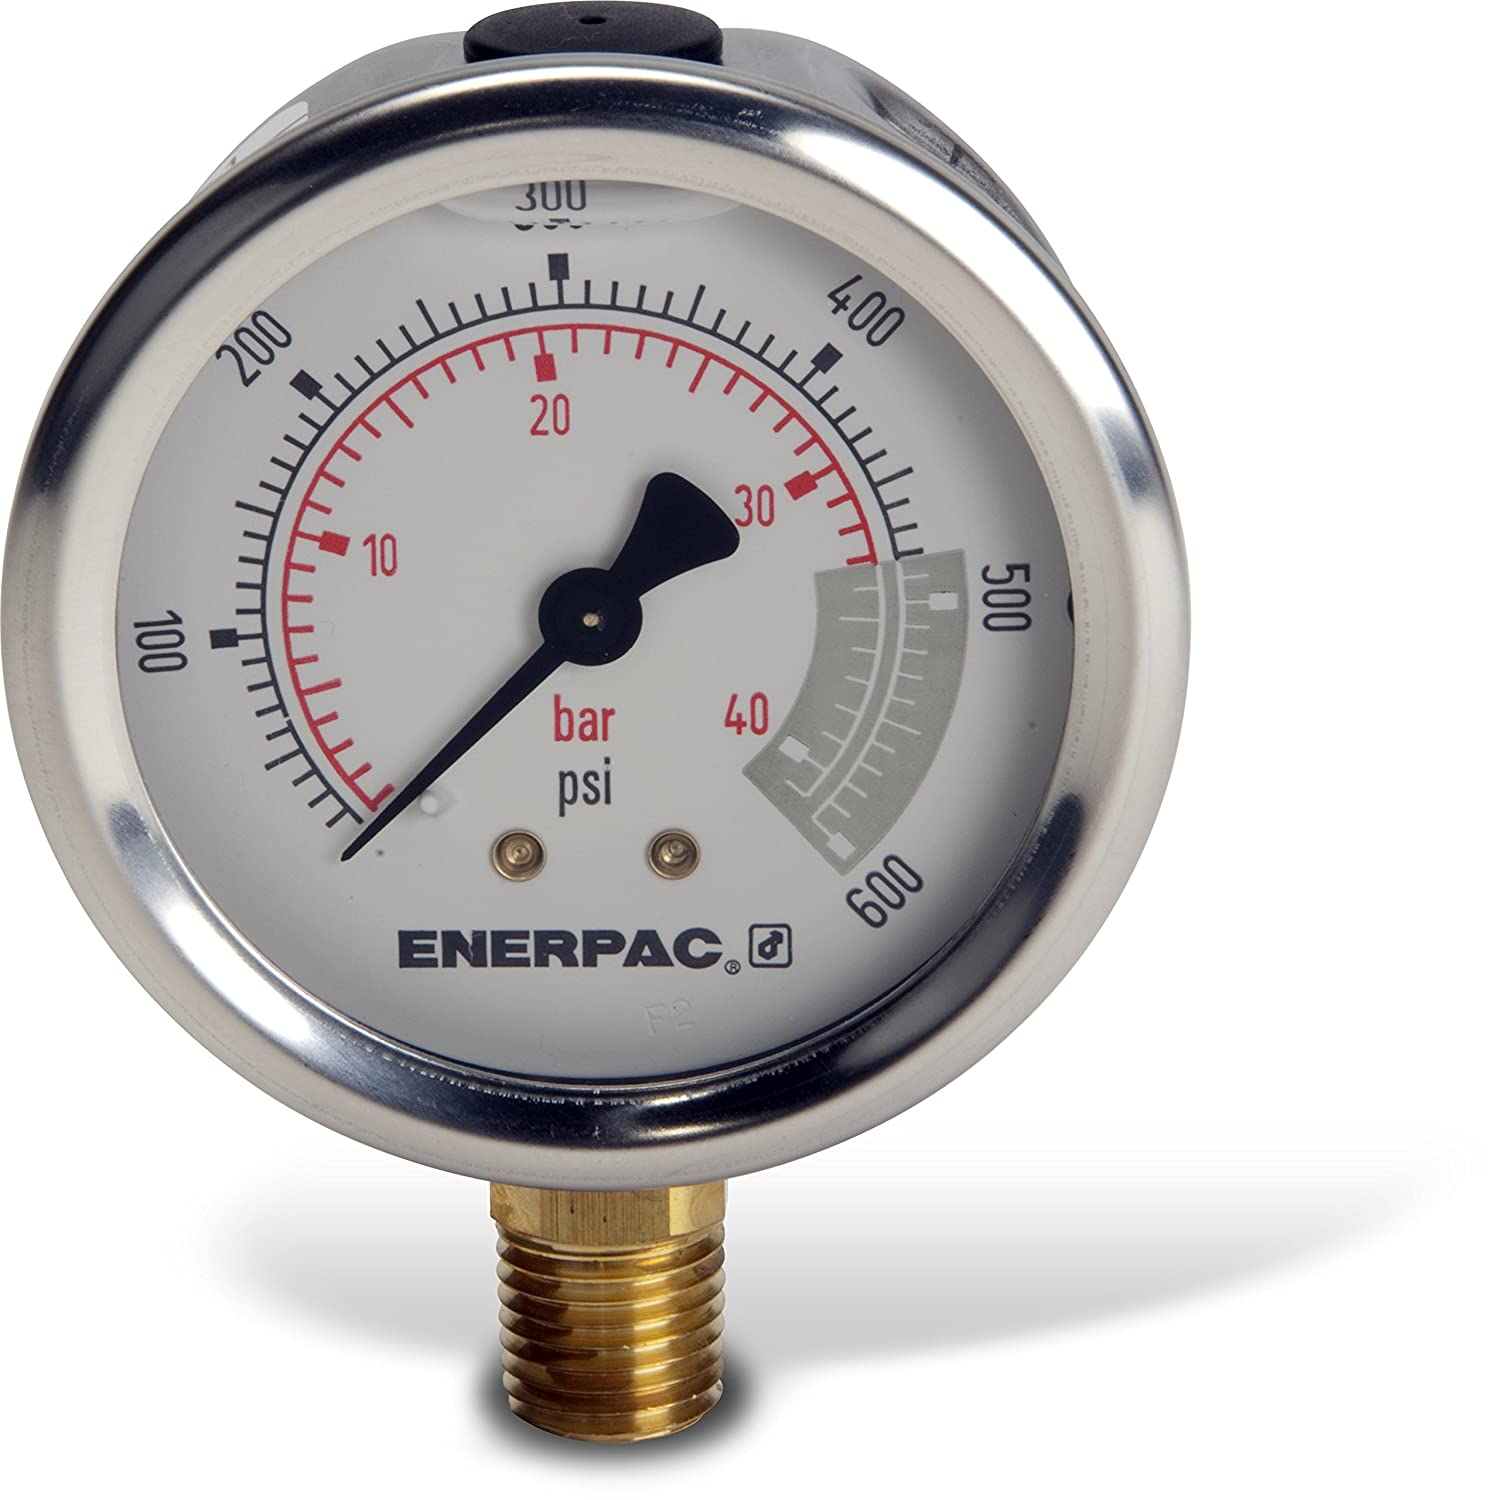 Details about  /Robertshaw Pressure Gauge Lbs per 2 IN 5-30 40mm *FREE SHIPPING*